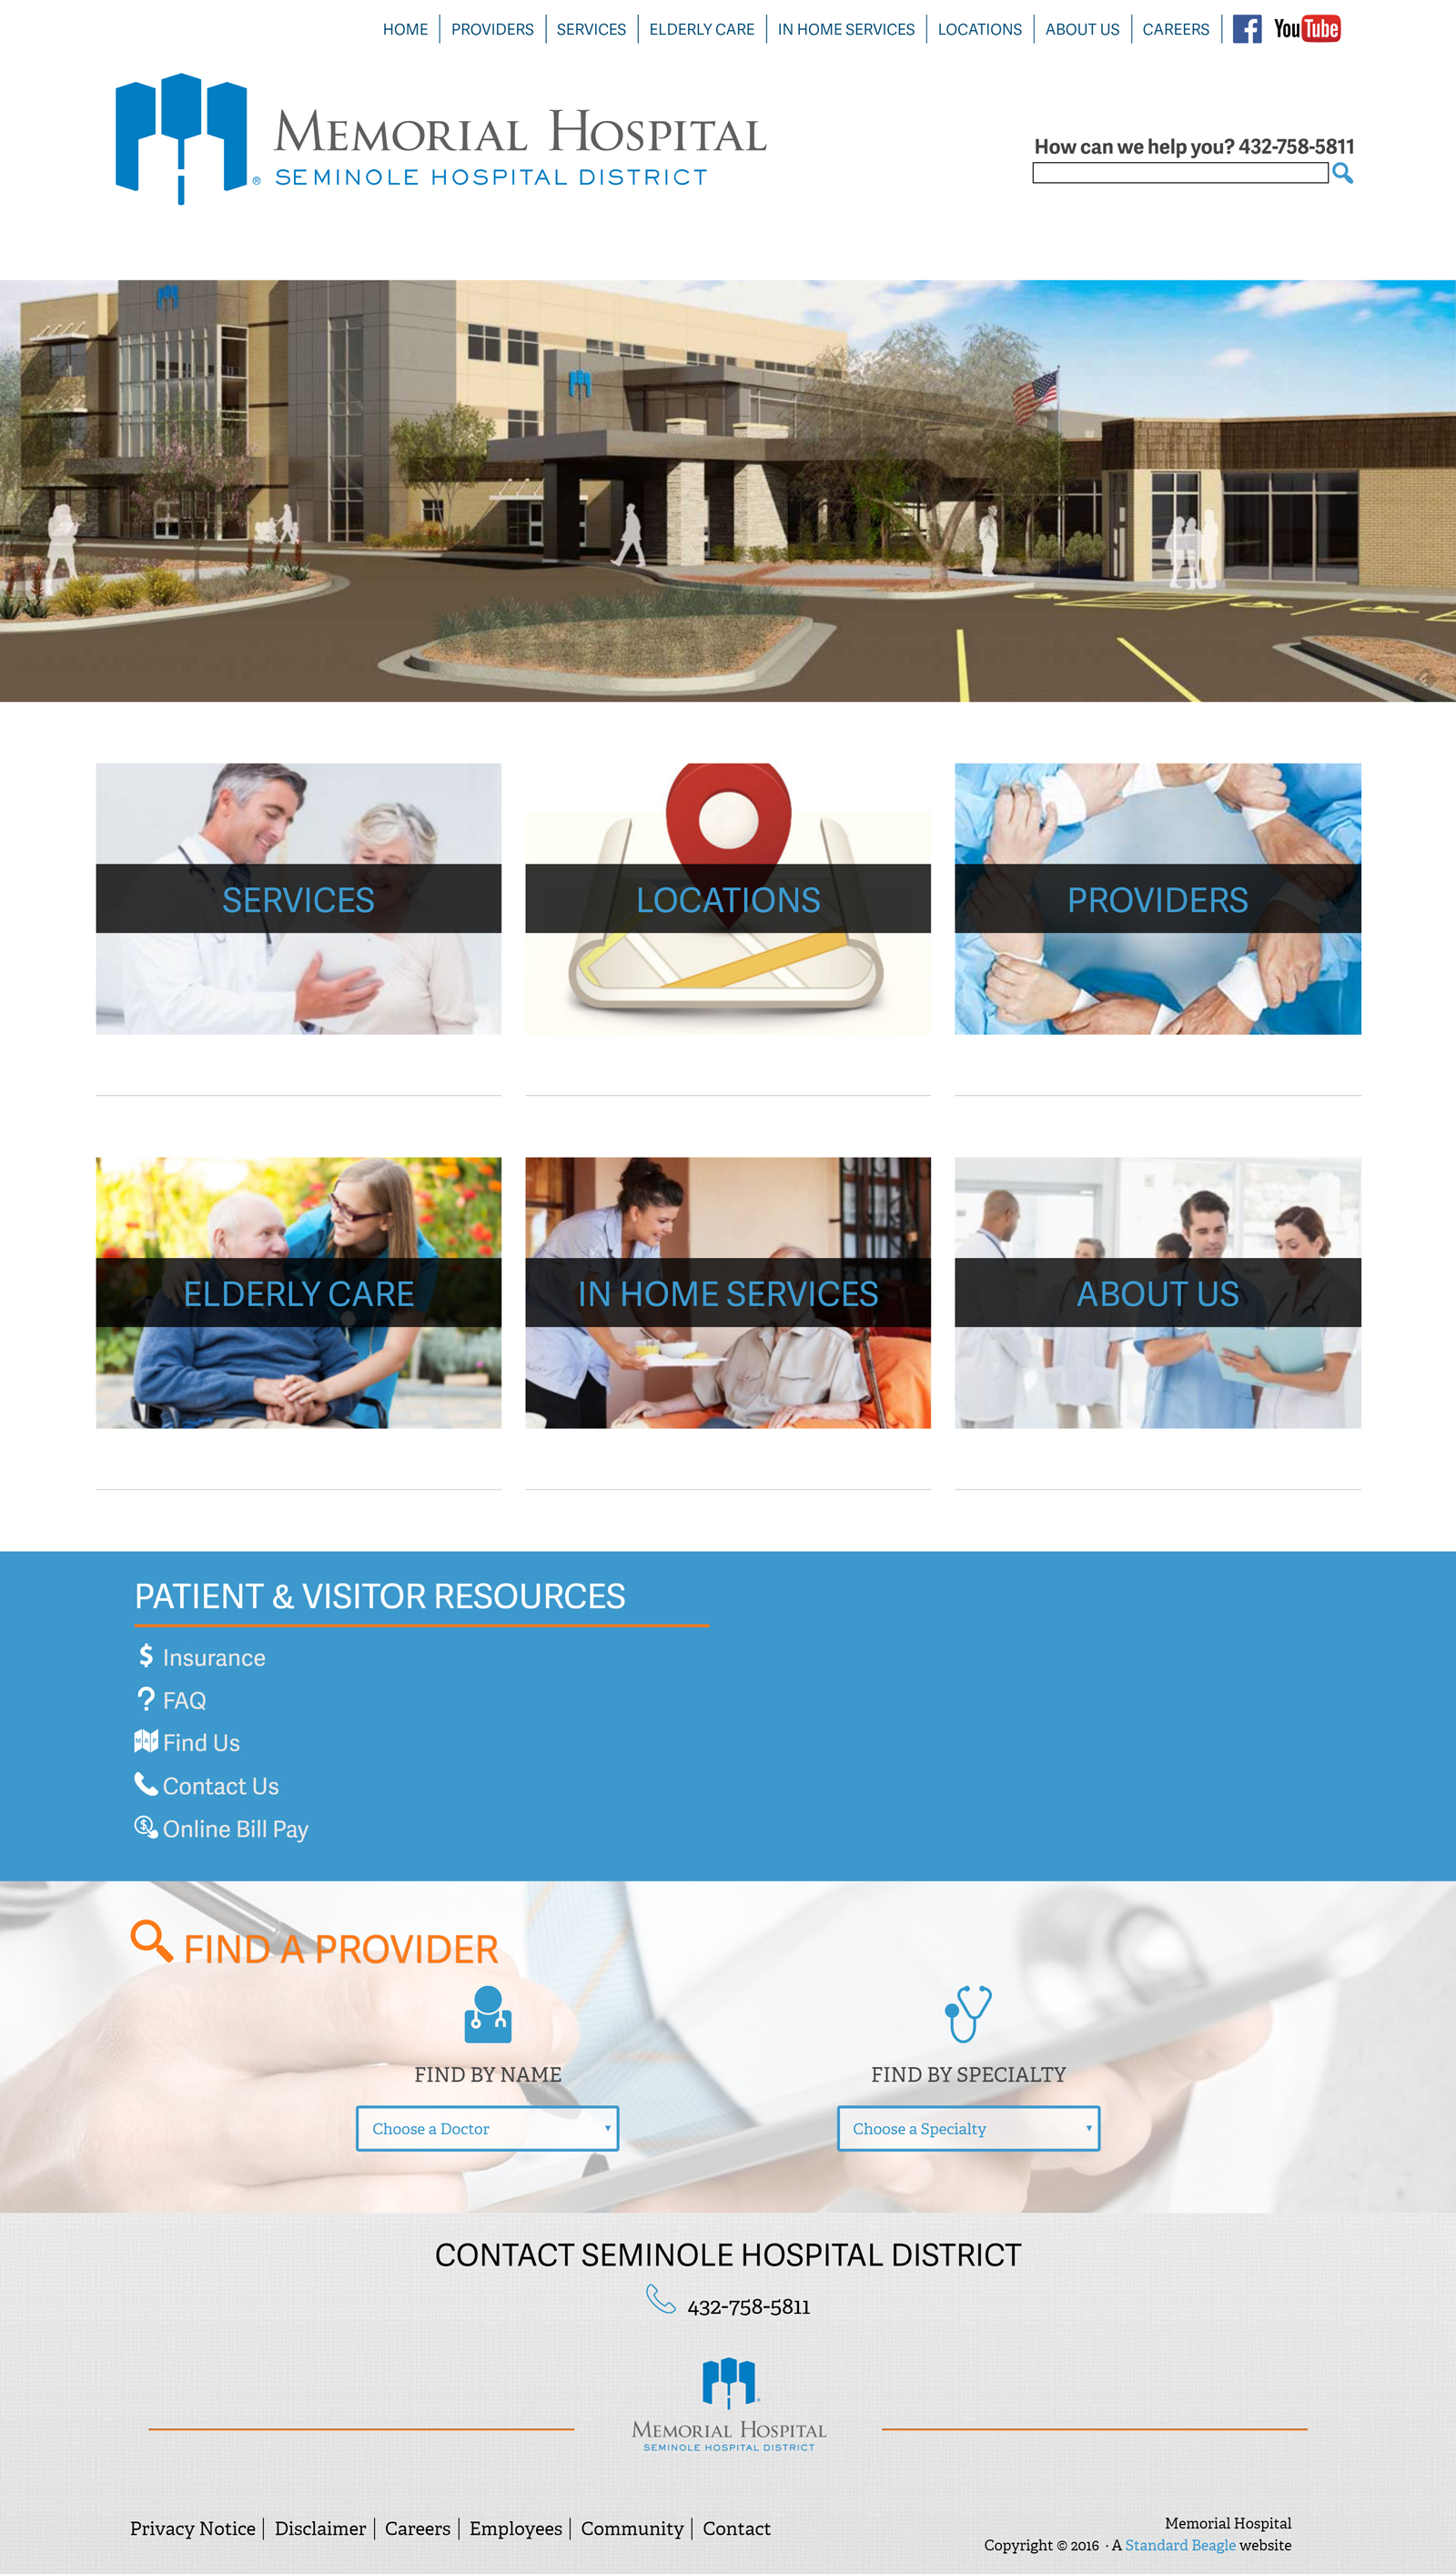 home-page-final home page - seminole hospital district